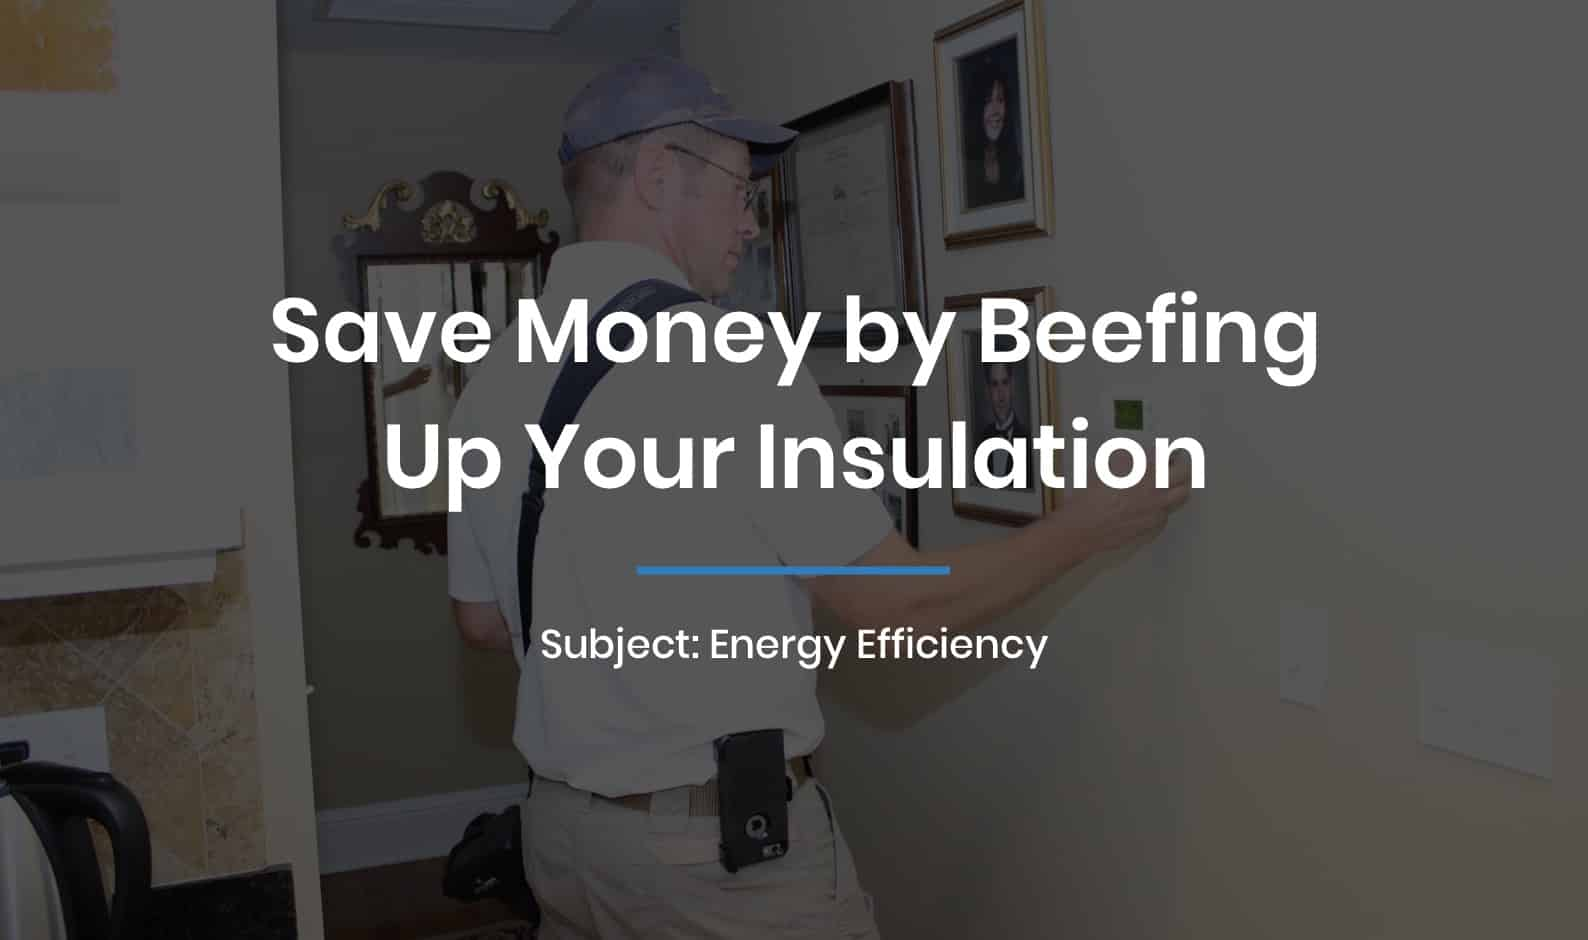 Save Money by Beefing Up Your Insulation